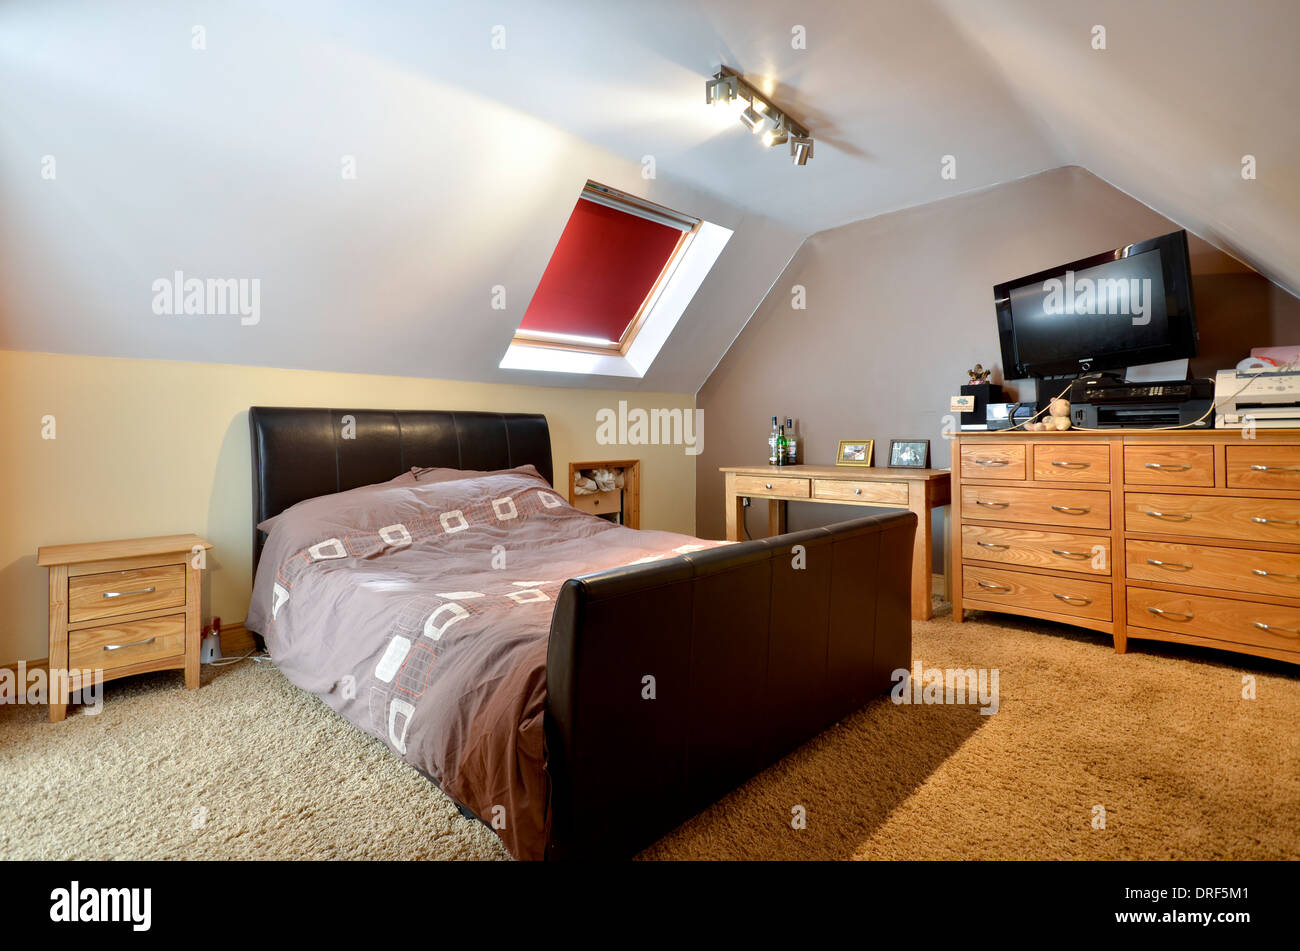 Attic Bedroom with skylight - Stock Image